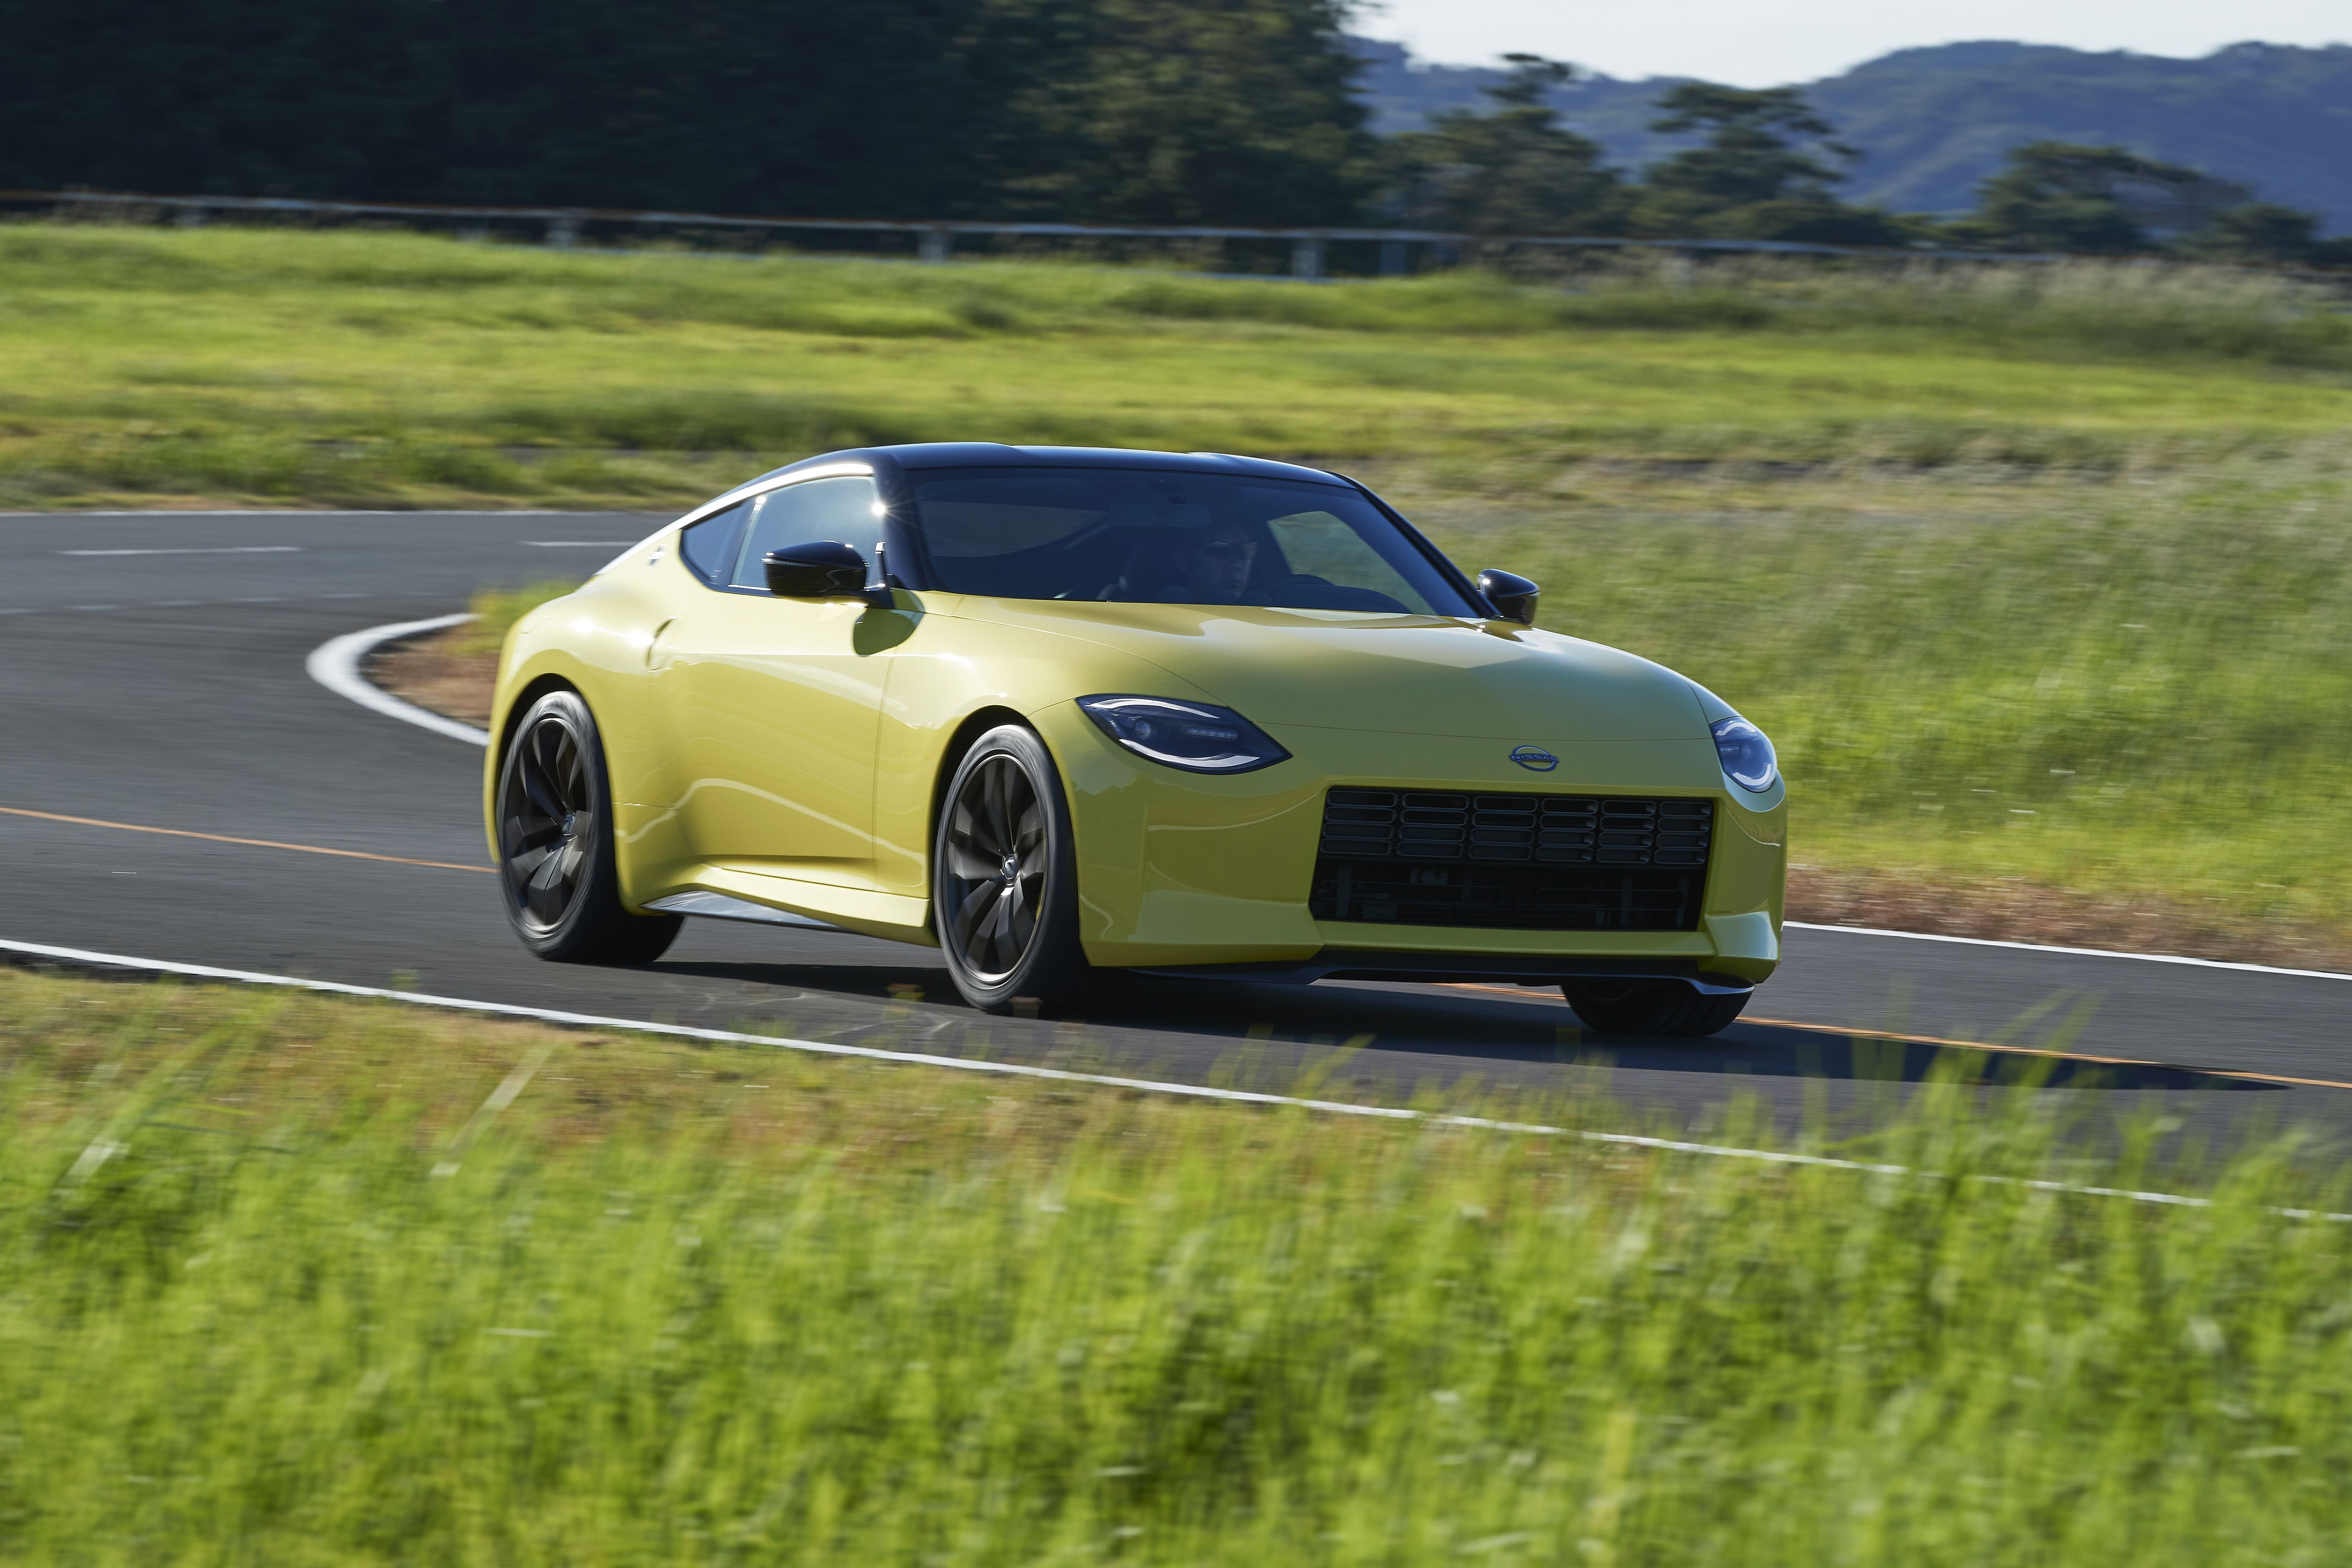 Wild Rumor Says Nissan 400Z Could Have a Better Power-to-Weight Ratio Than the Lotus Evora GT